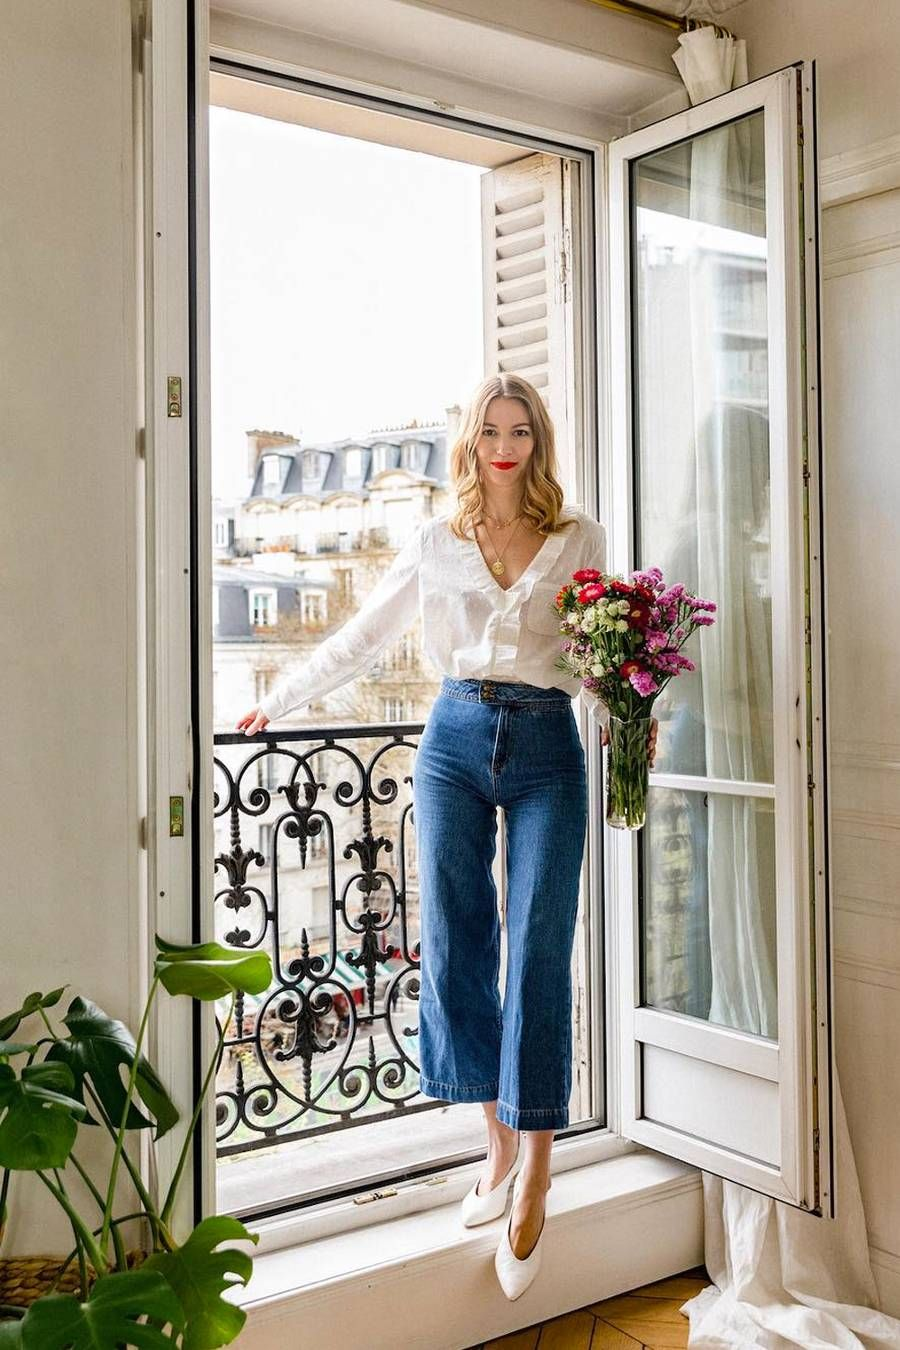 SUMMER STYLE: WHAT TO WEAR TO A CUTE CAFE LIKE A FRENCH GIRL